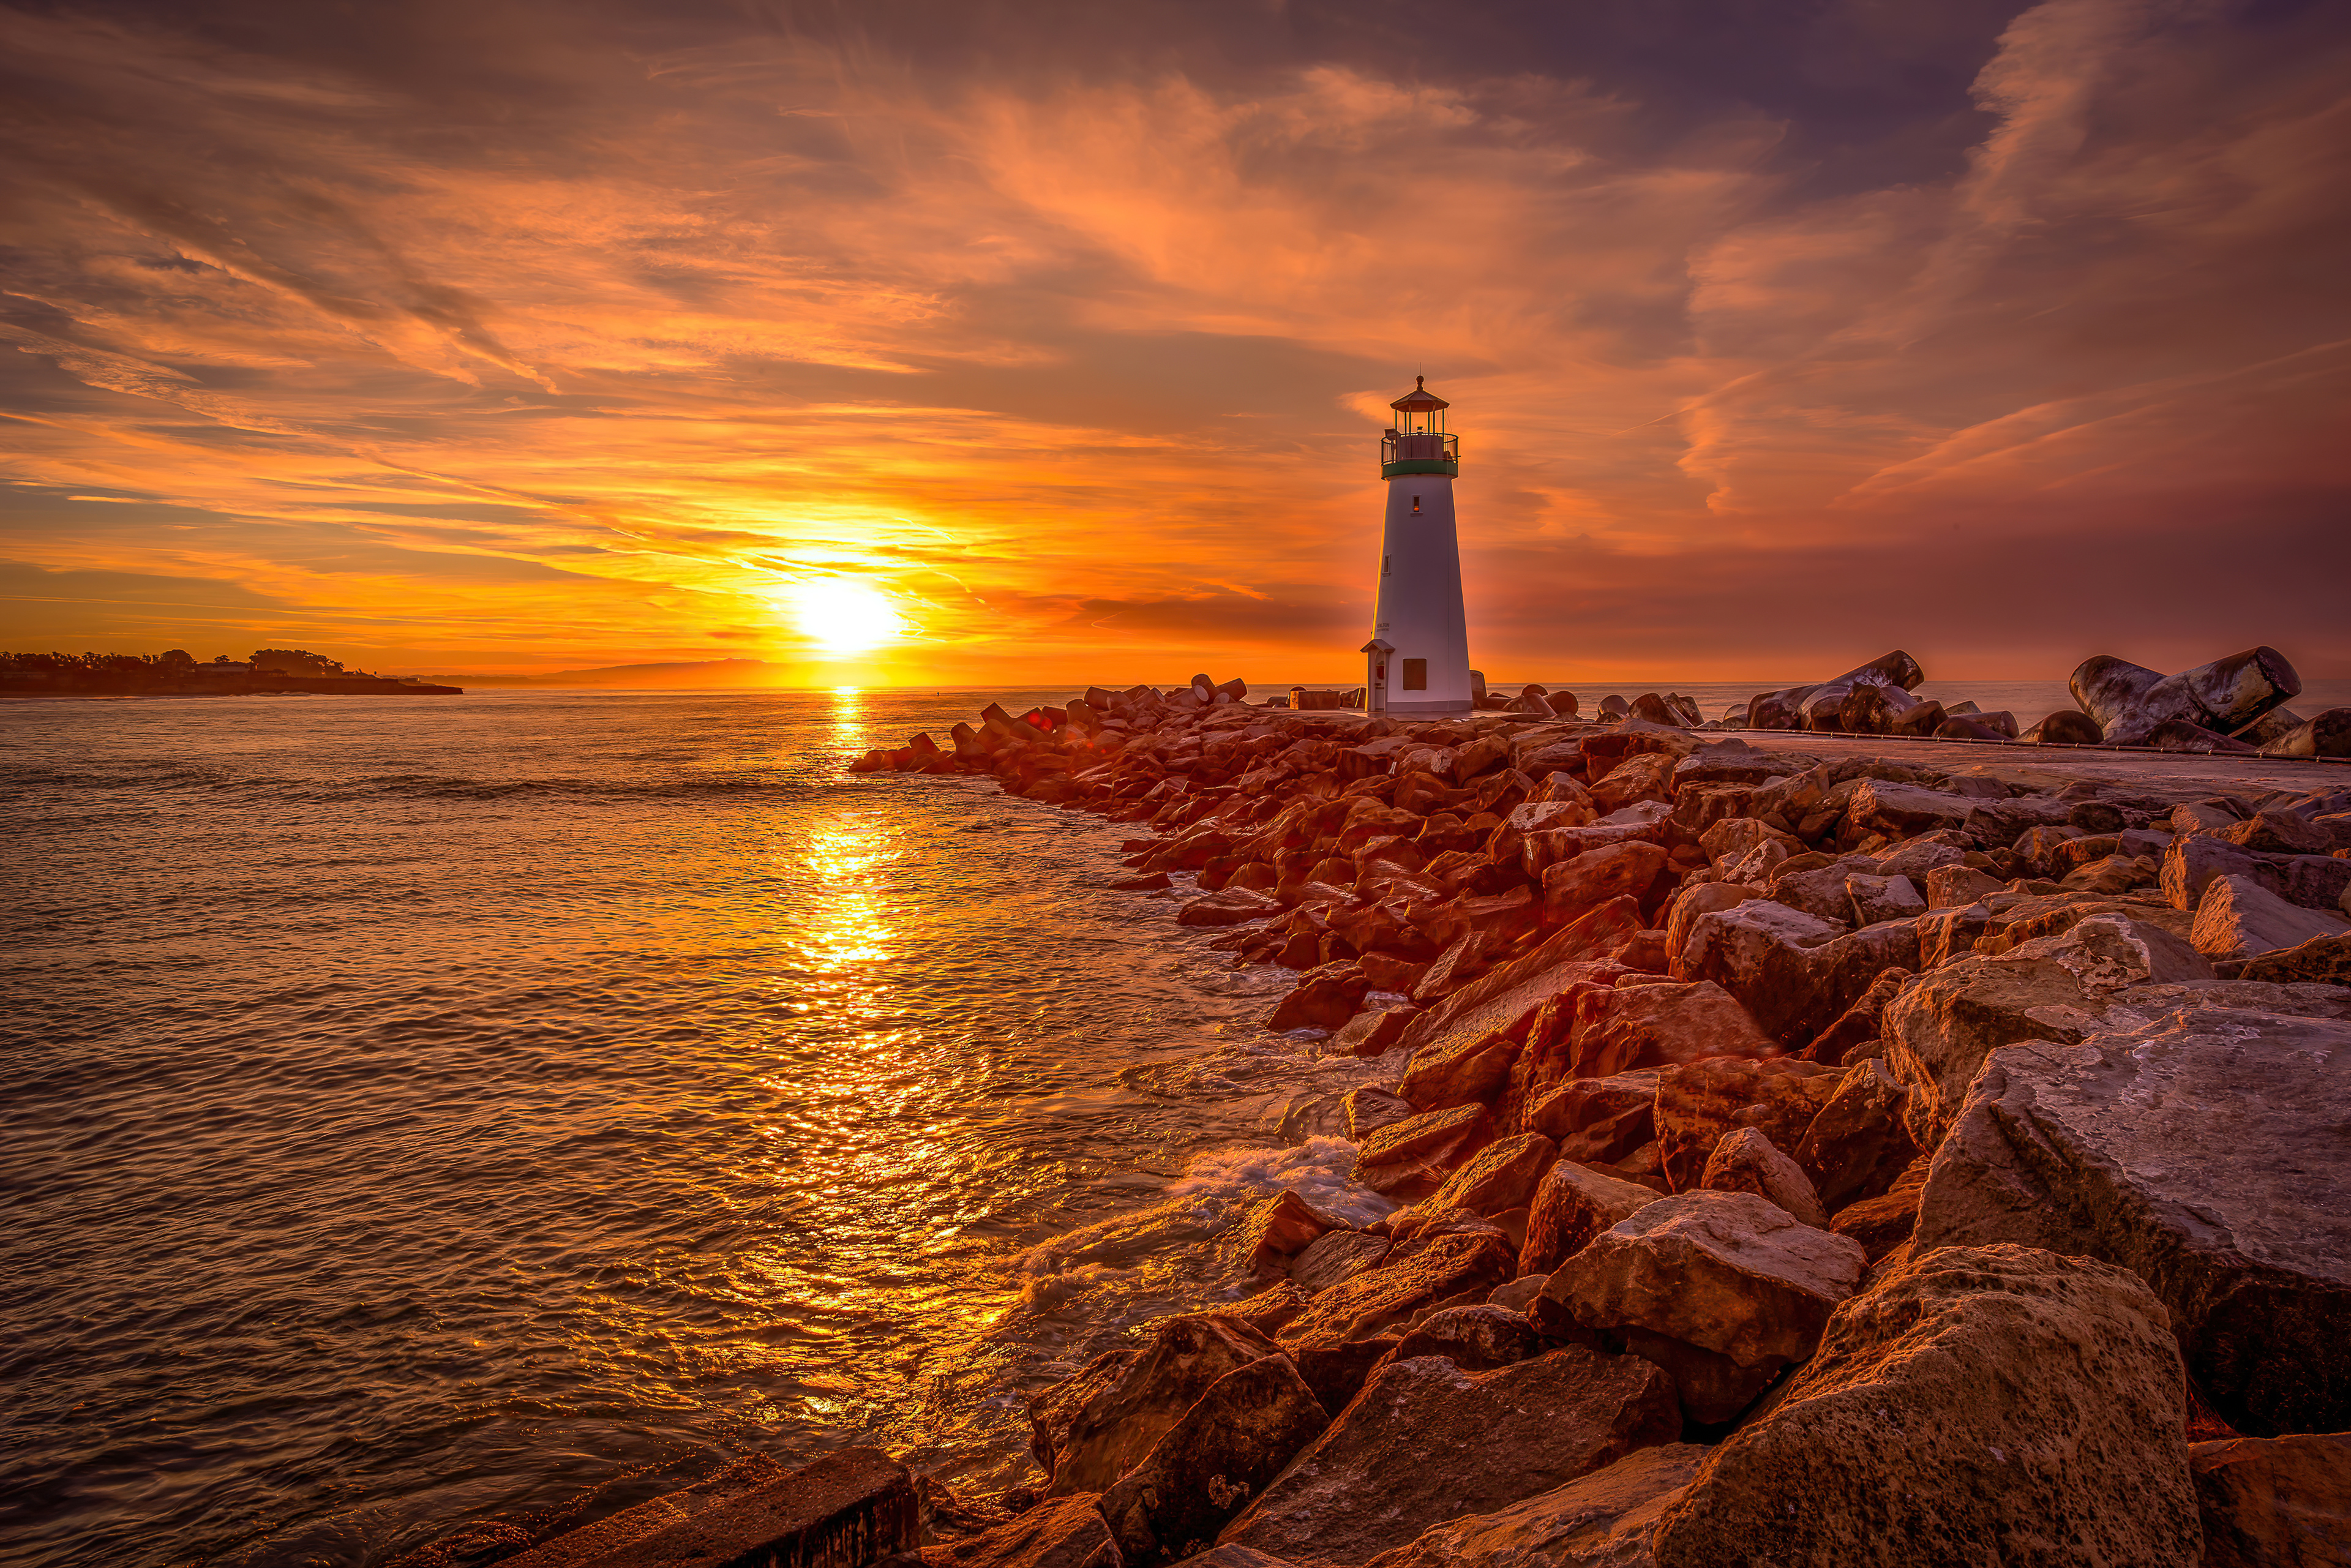 lighthouse sunrise and sunset 4k 1602504270 - Lighthouse Sunrise And Sunset 4k - Lighthouse Sunrise And Sunset 4k wallpapers